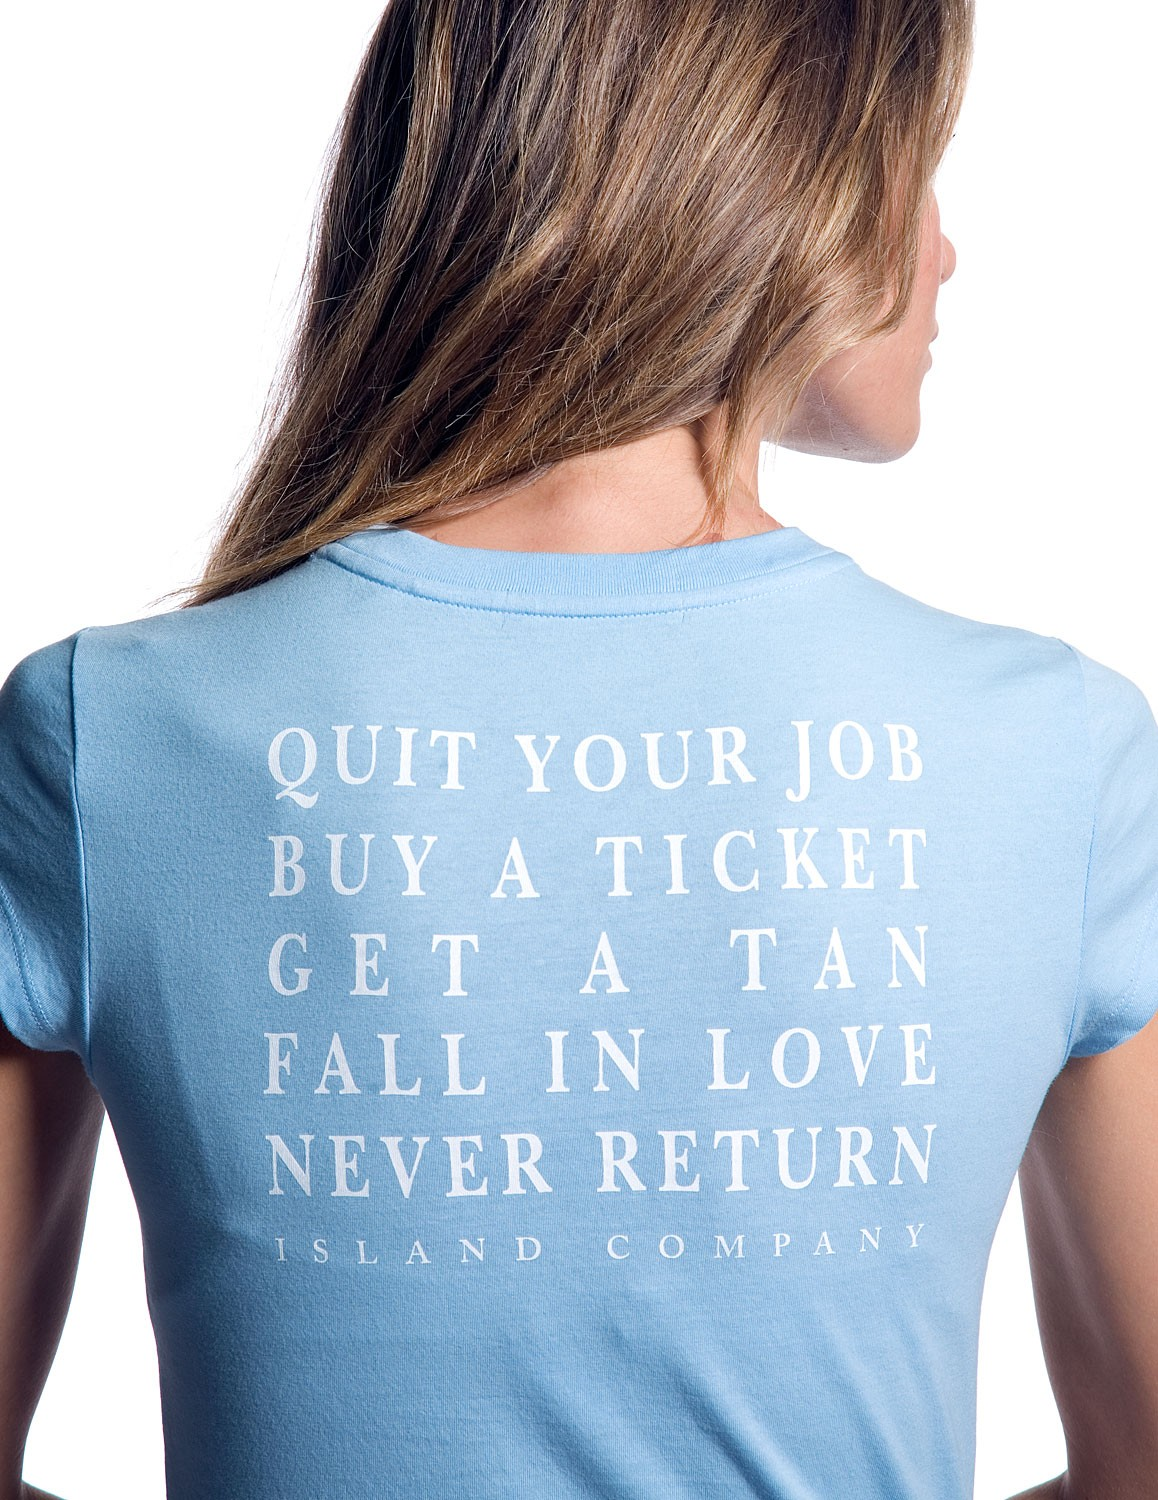 Women's Azul Blue Quit Your Job, Buy a Ticket Tee | Island Company